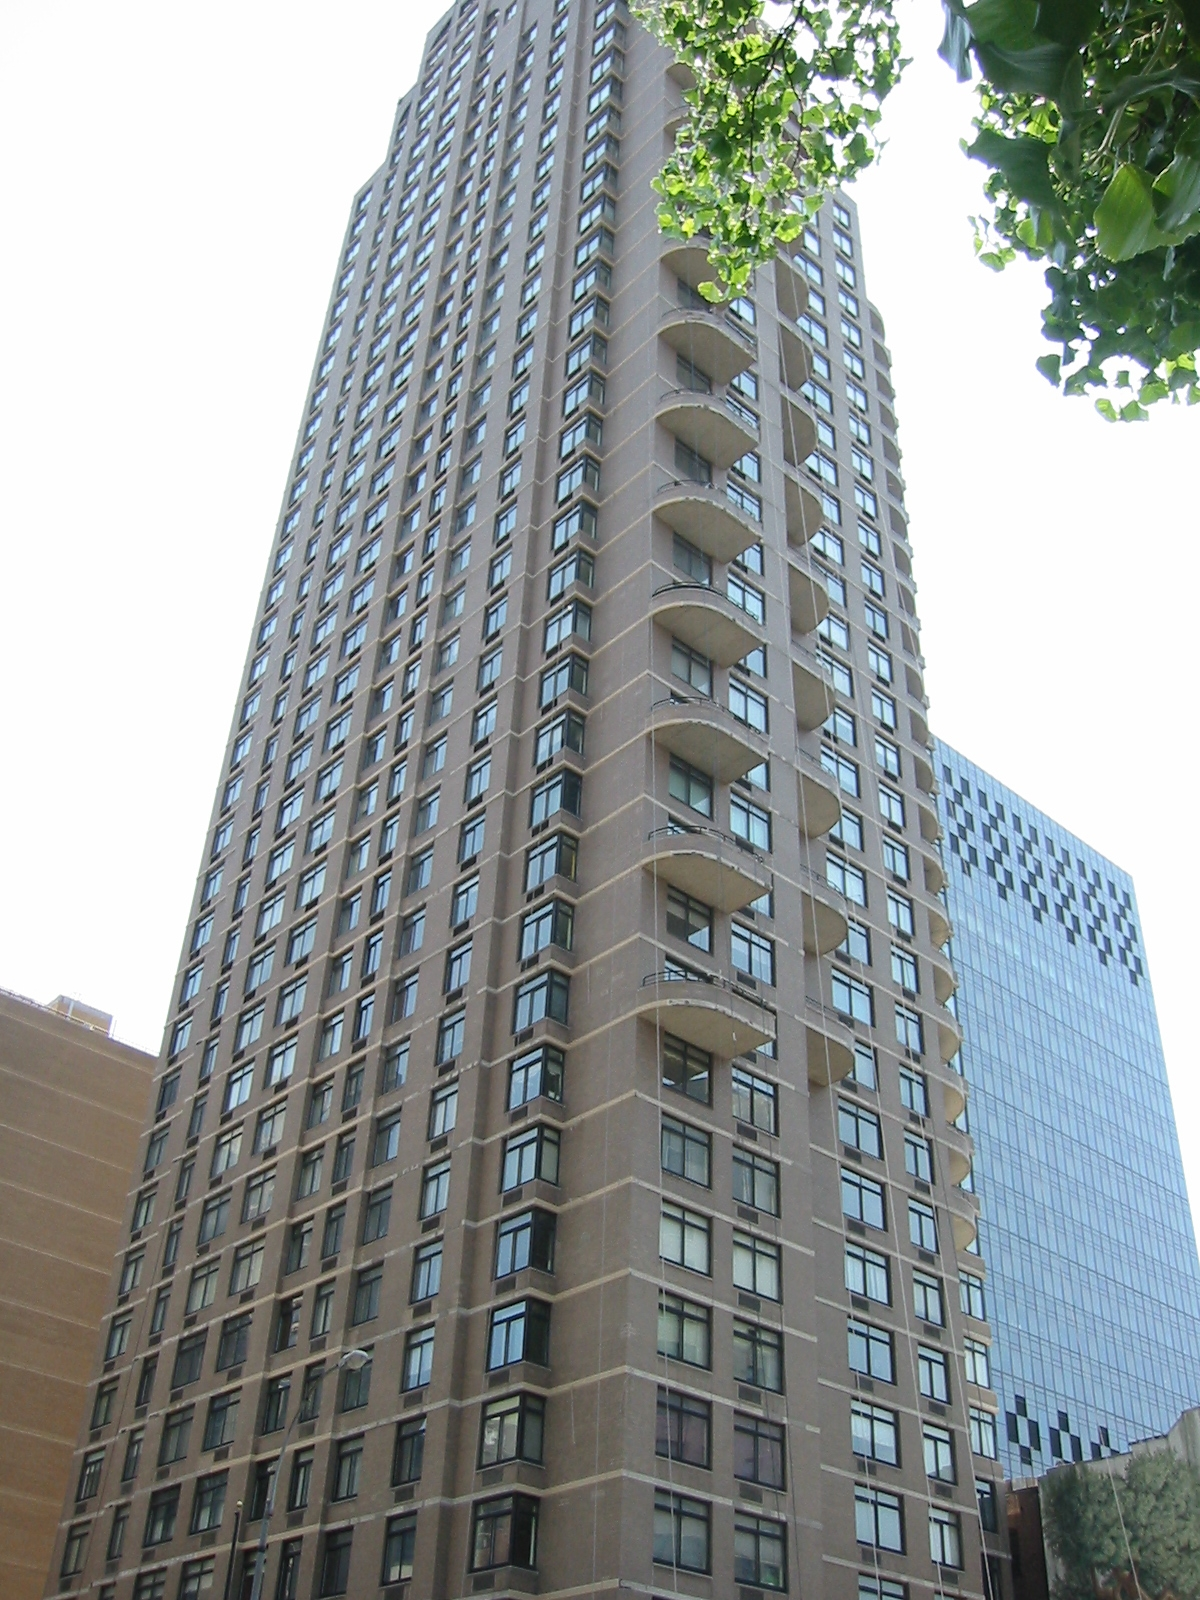 Upper east side condos for sale and rent in nyc manhattan for Apartments for sale upper east side nyc